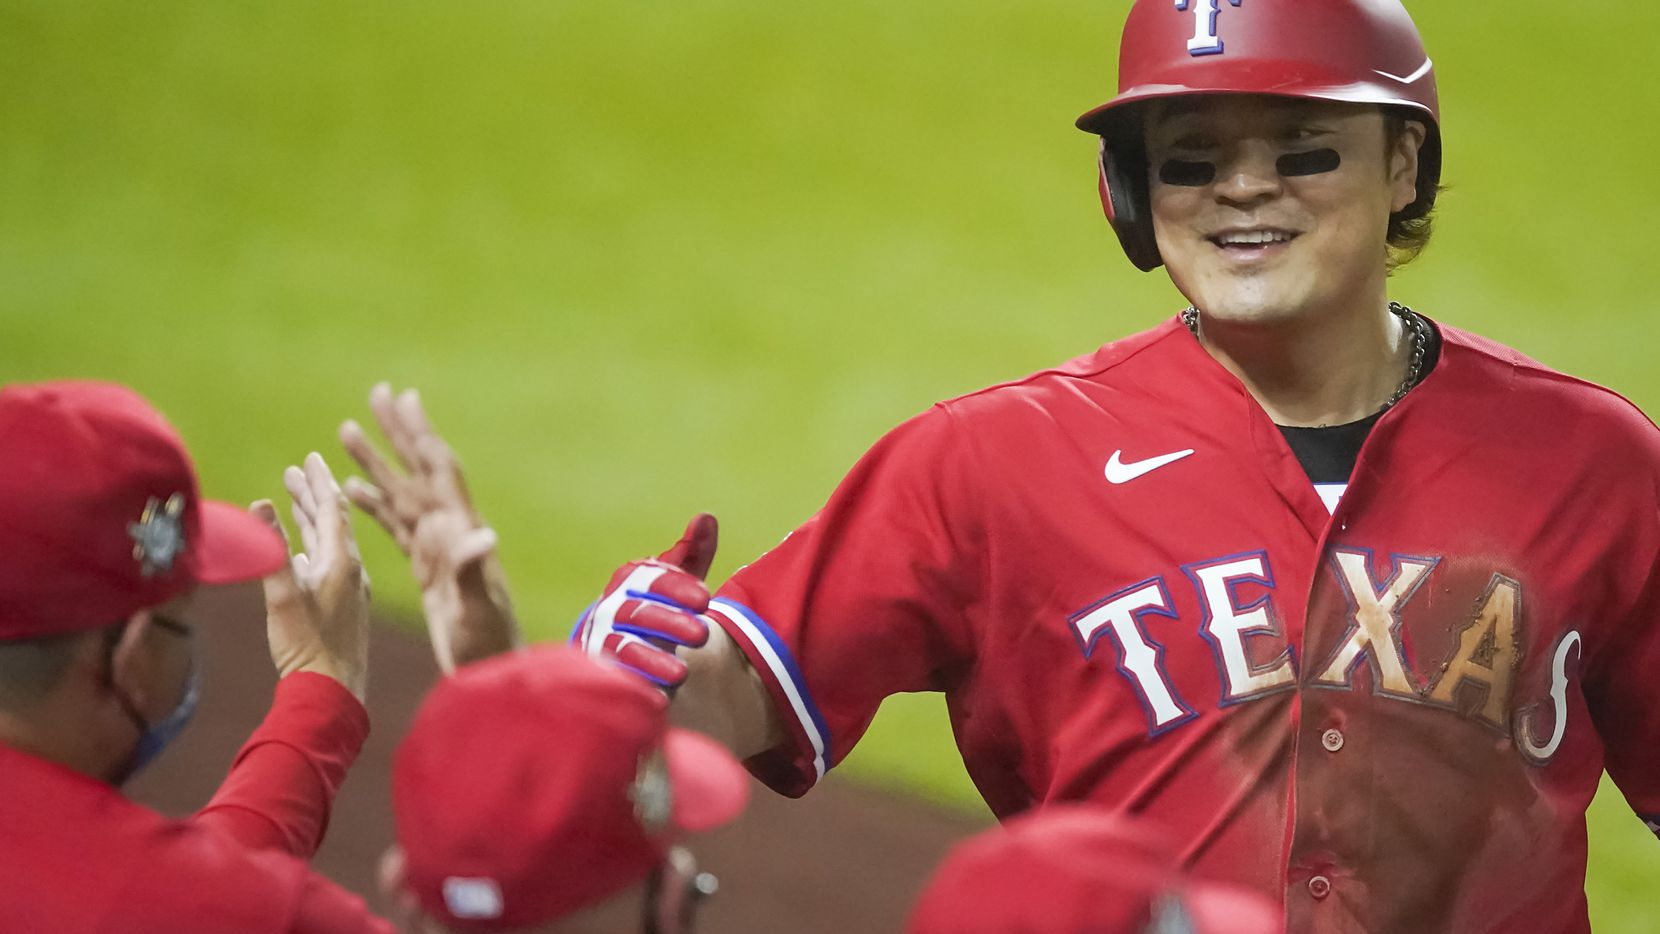 Texas Rangers designated hitter Shin-Soo Choo celebrates after scoring during the third inning against the Los Angeles Dodgers at Globe Life Field on Friday, Aug. 28, 2020. (Smiley N. Pool/The Dallas Morning News)